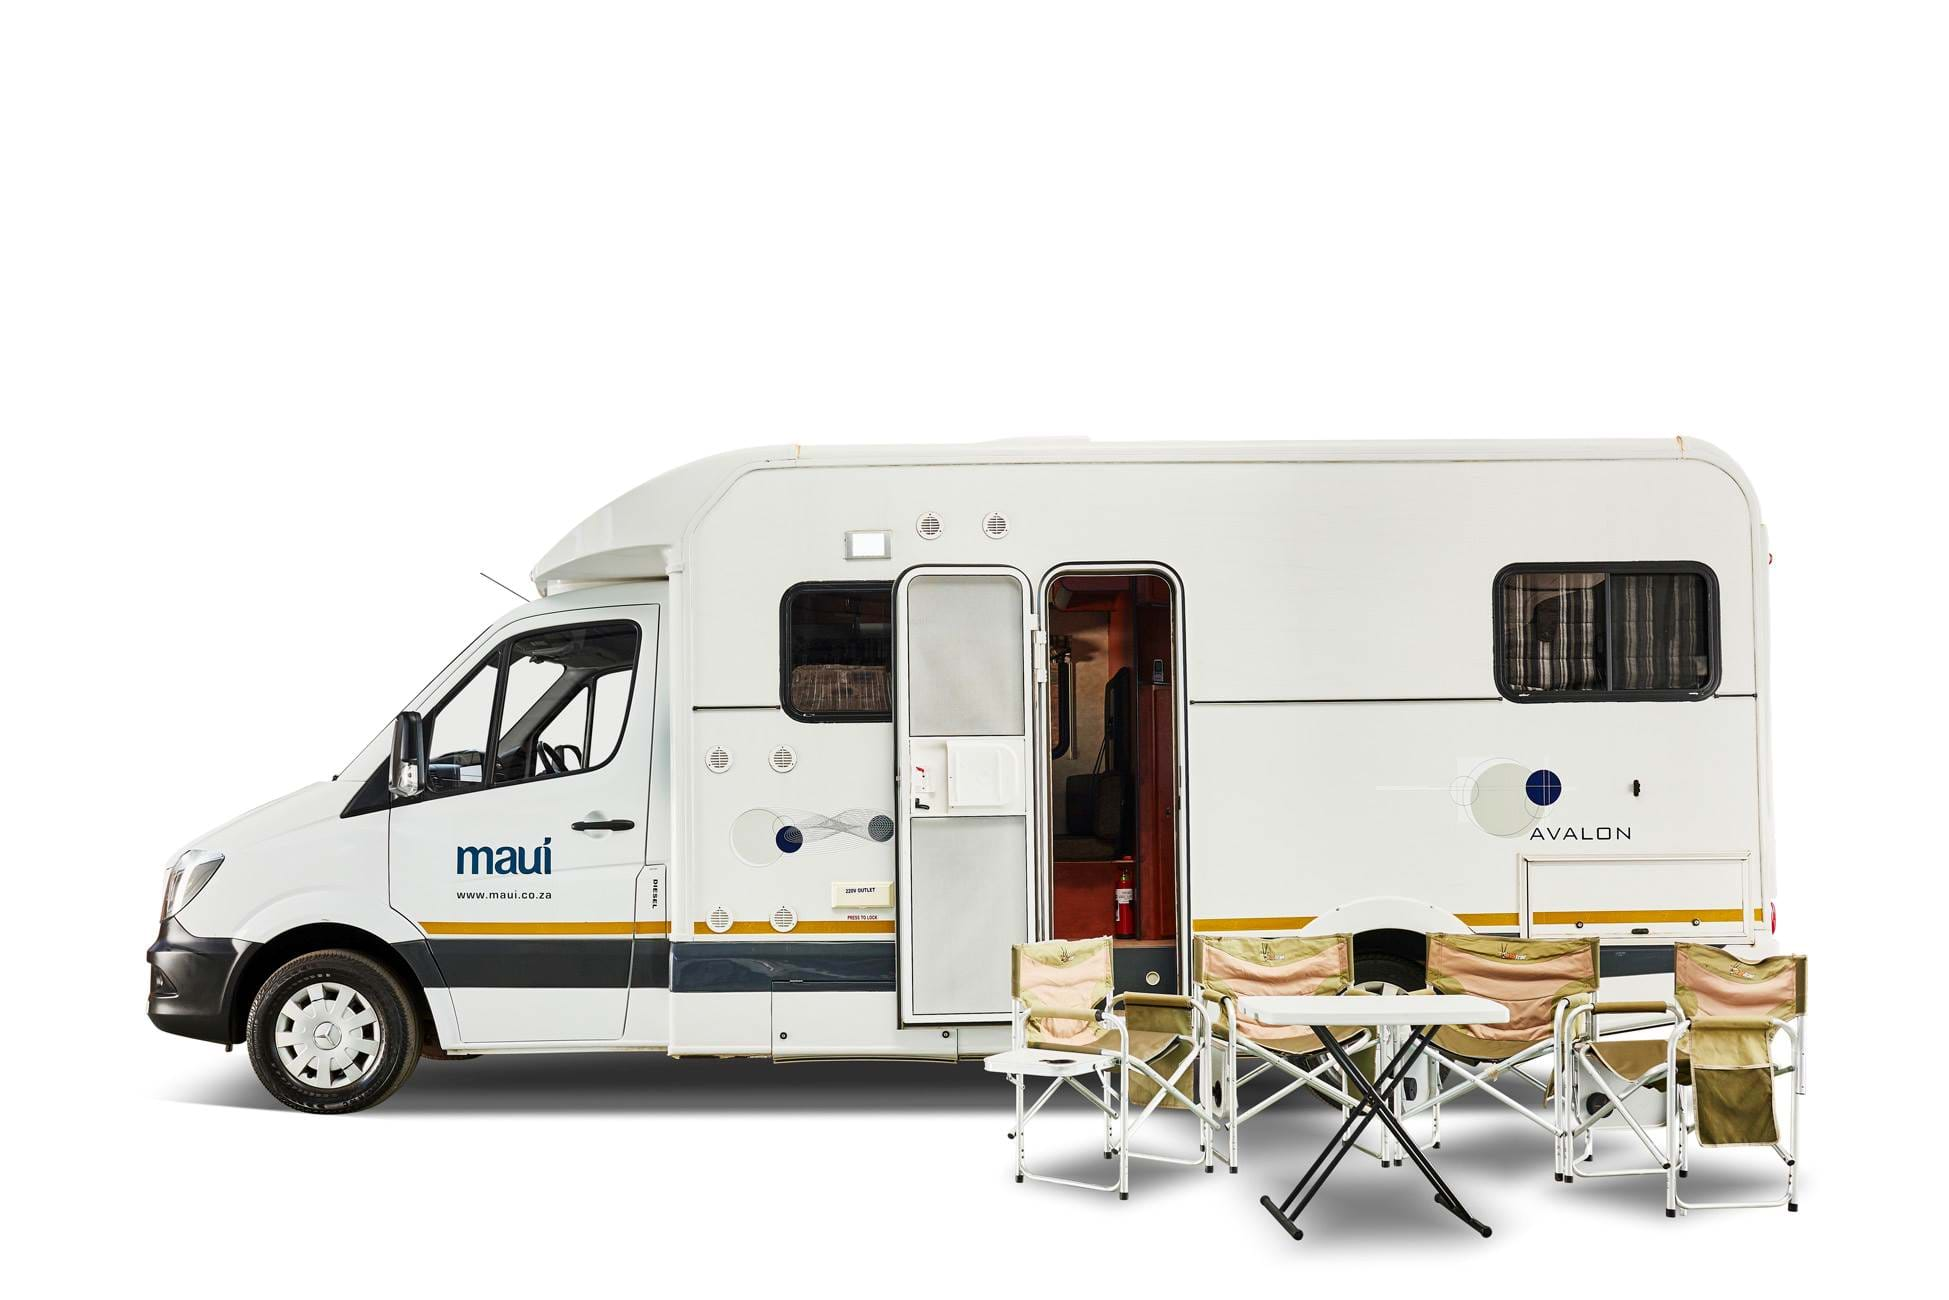 M4BL Motorhome - Ready to camp